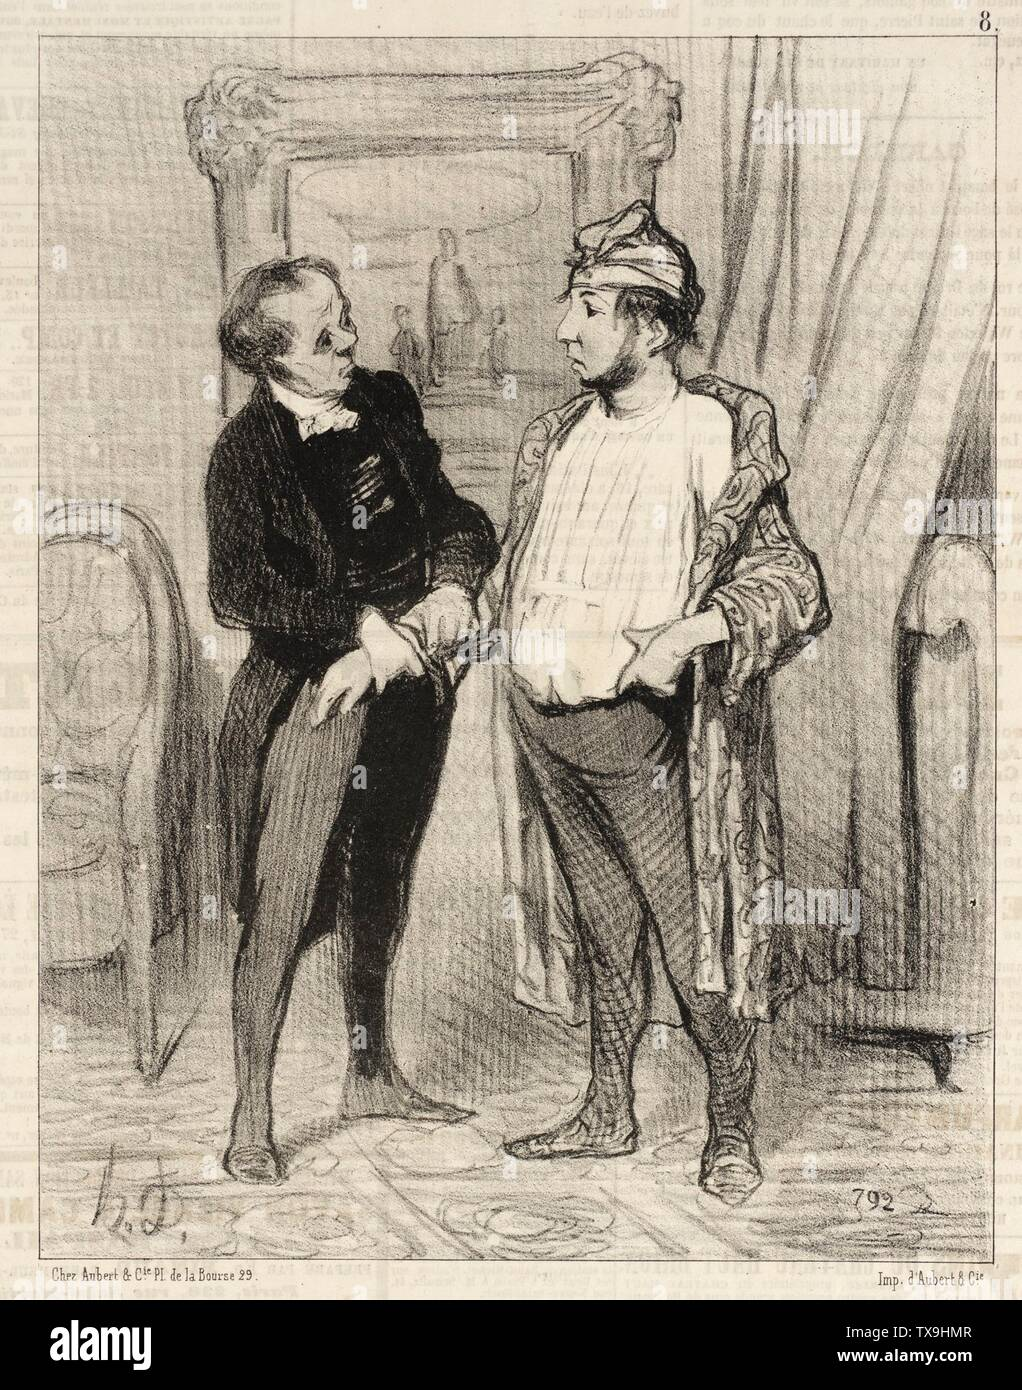 'Mon cher je t'assure que je te...; English:  France, 1845 Series: Les Amis, no. 8 Periodical: Le Charivari, 18 August 1845 Prints; lithographs Lithograph Sheet: 9 1/4 x 7 5/16 in. (23.5 x 18.57 cm) Gift of Mrs. Florence Victor from The David and Florence Victor Collection (M.91.82.208) Prints and Drawings; 1845date QS:P571,+1845-00-00T00:00:00Z/9; ' - Stock Image